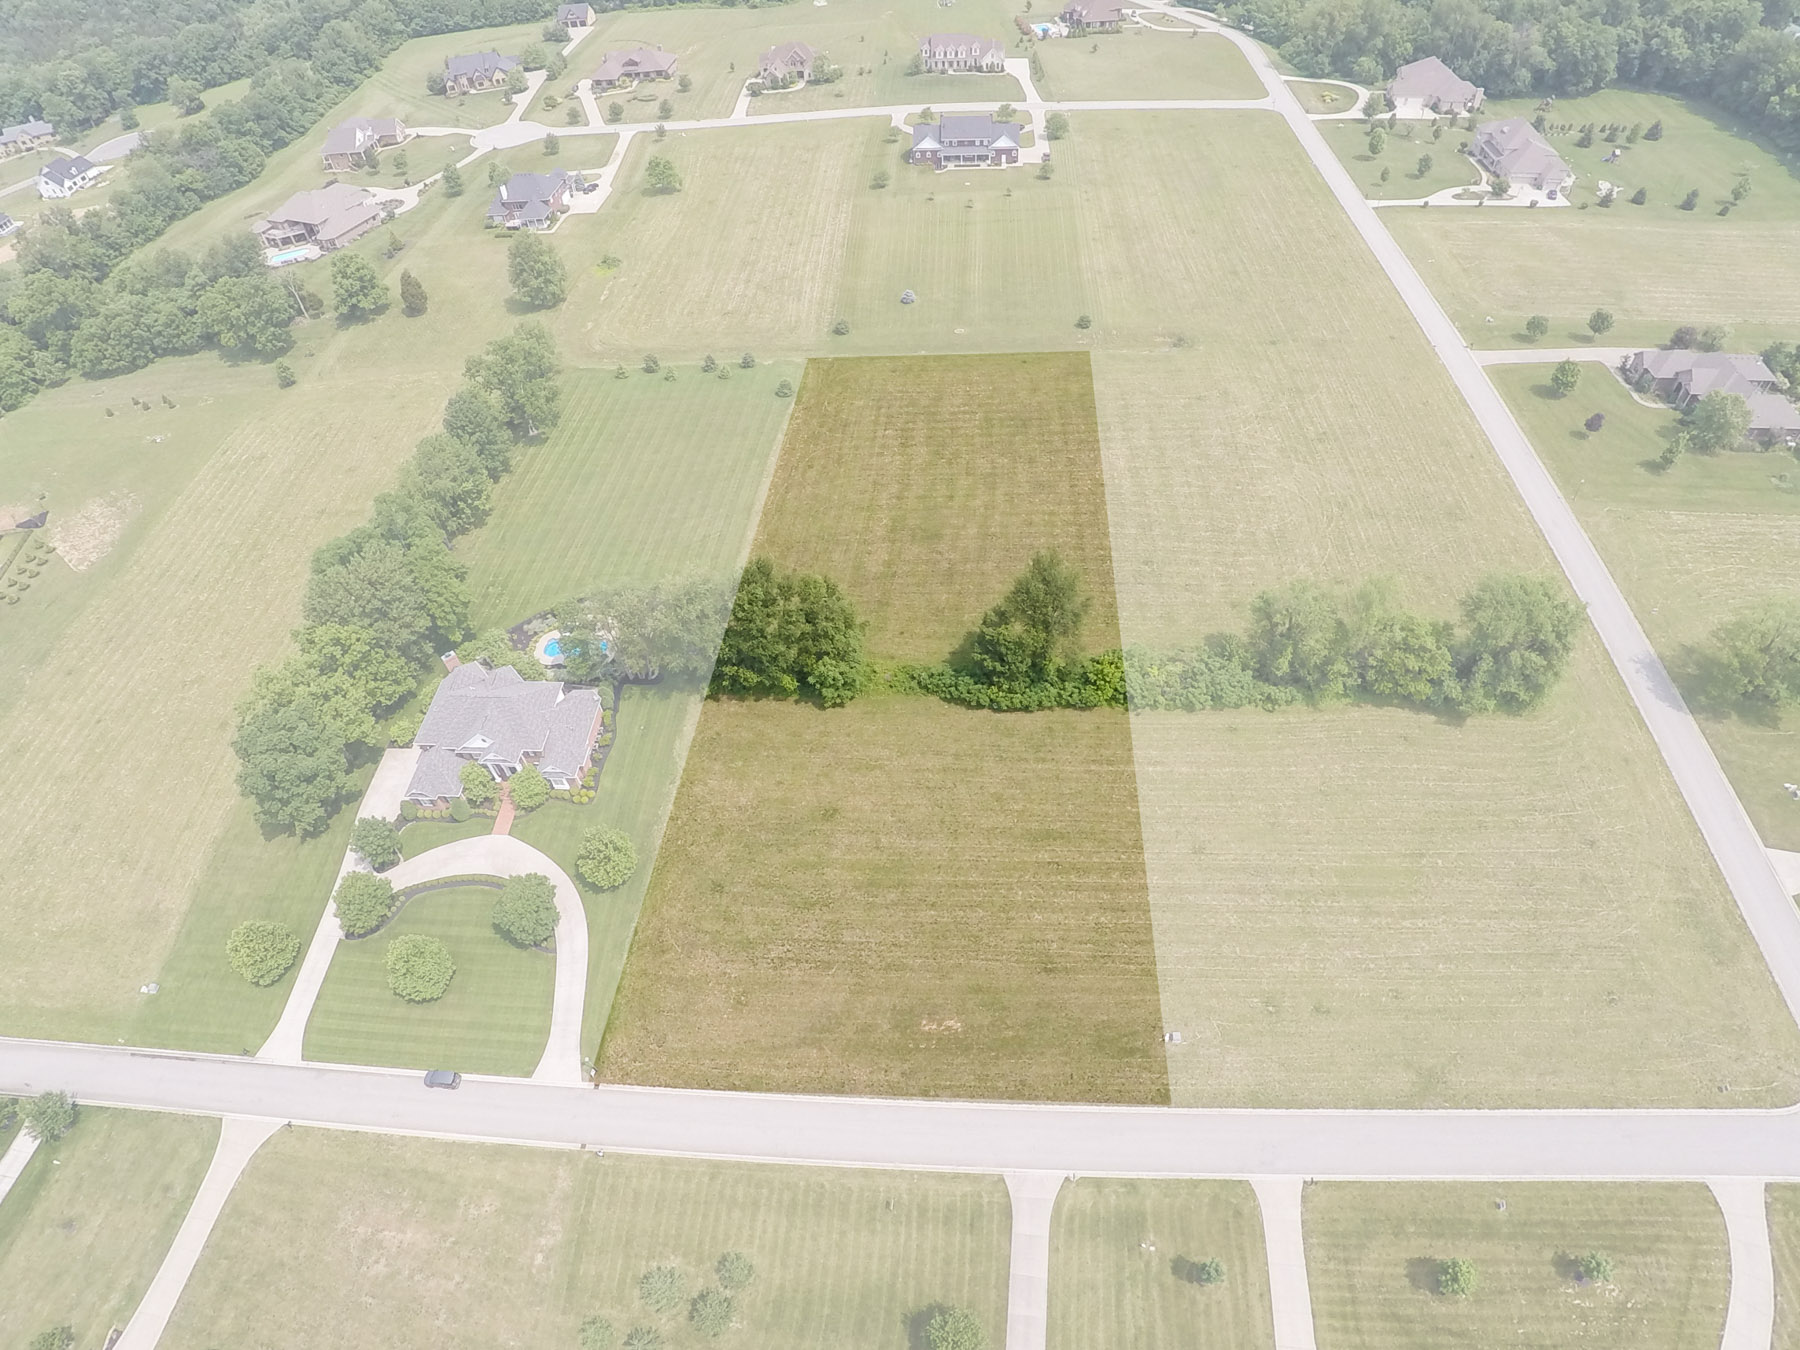 Land for Sale at 9608 W. View Court Crestwood, Kentucky 40014 United States